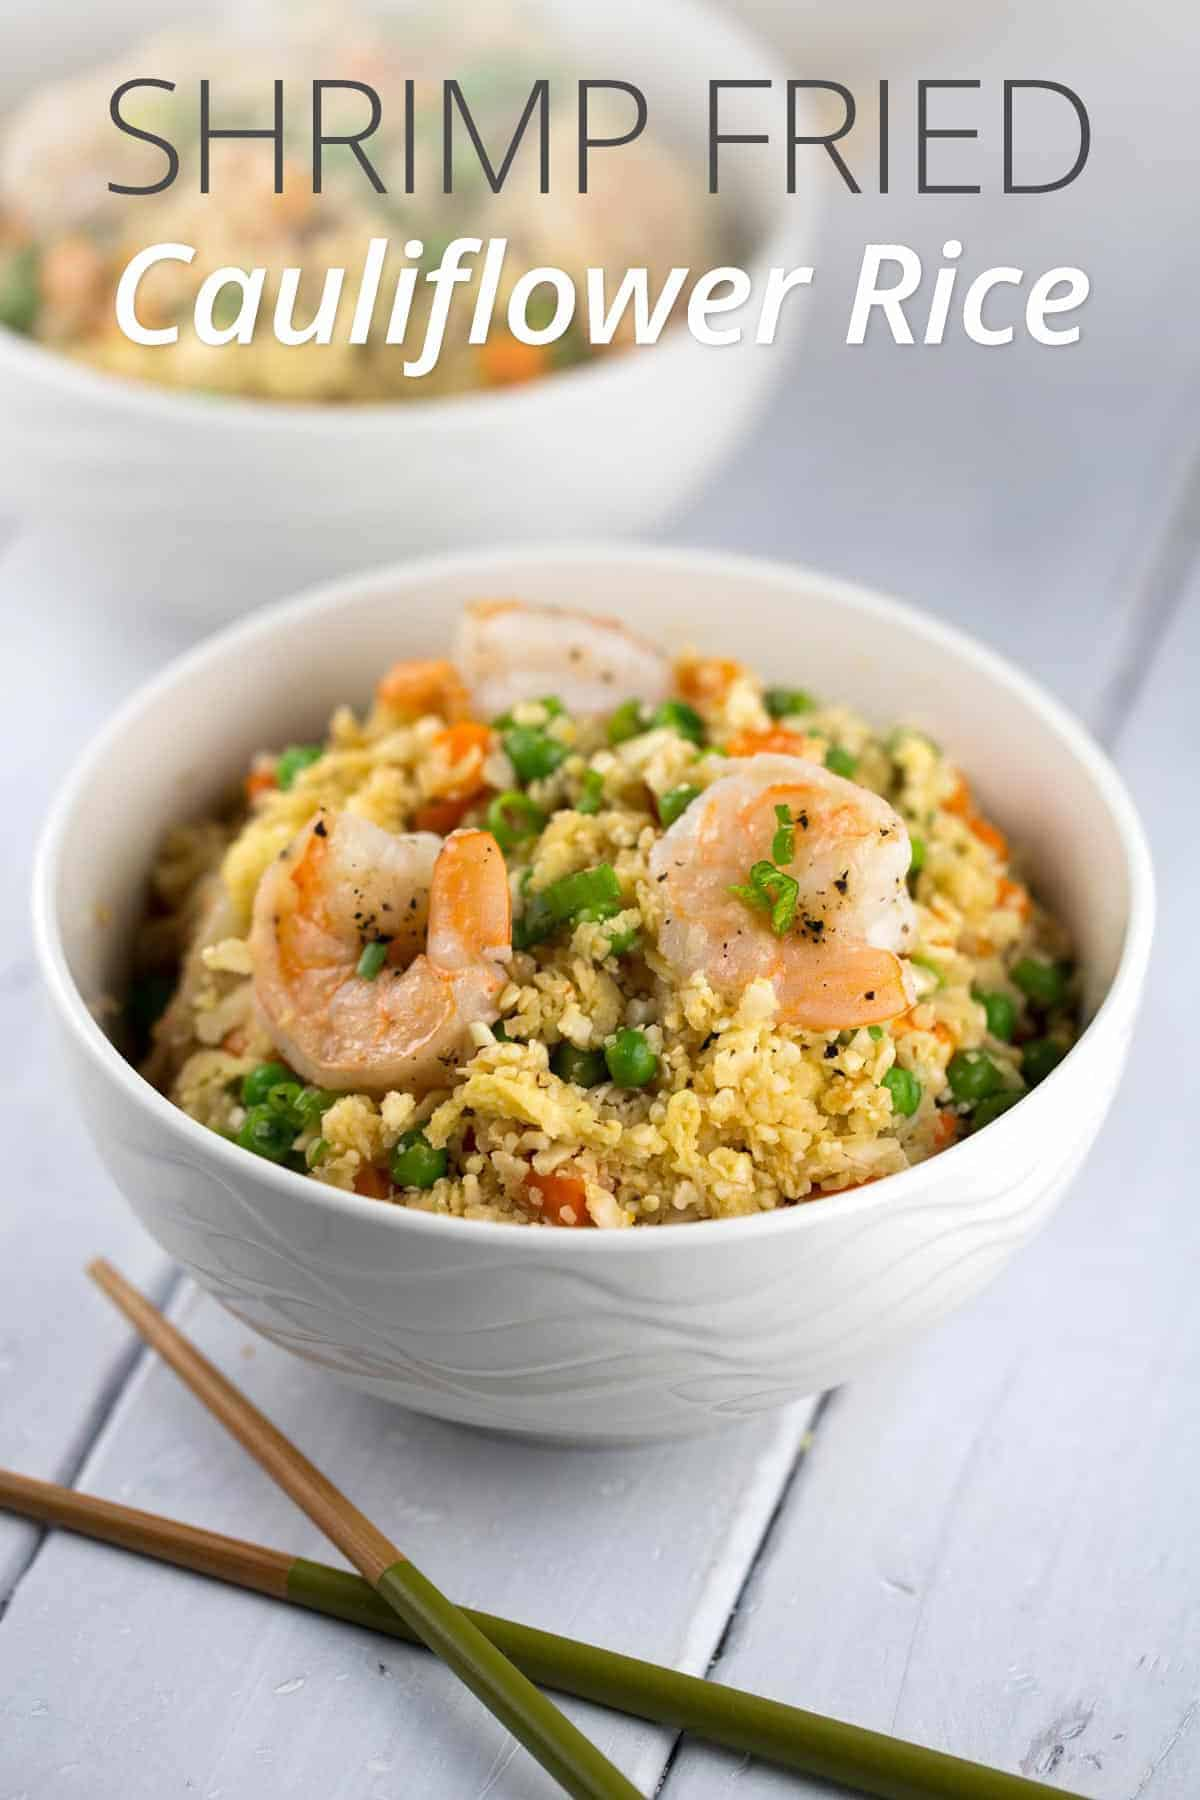 Shrimp Fried Cauliflower Rice Bowl